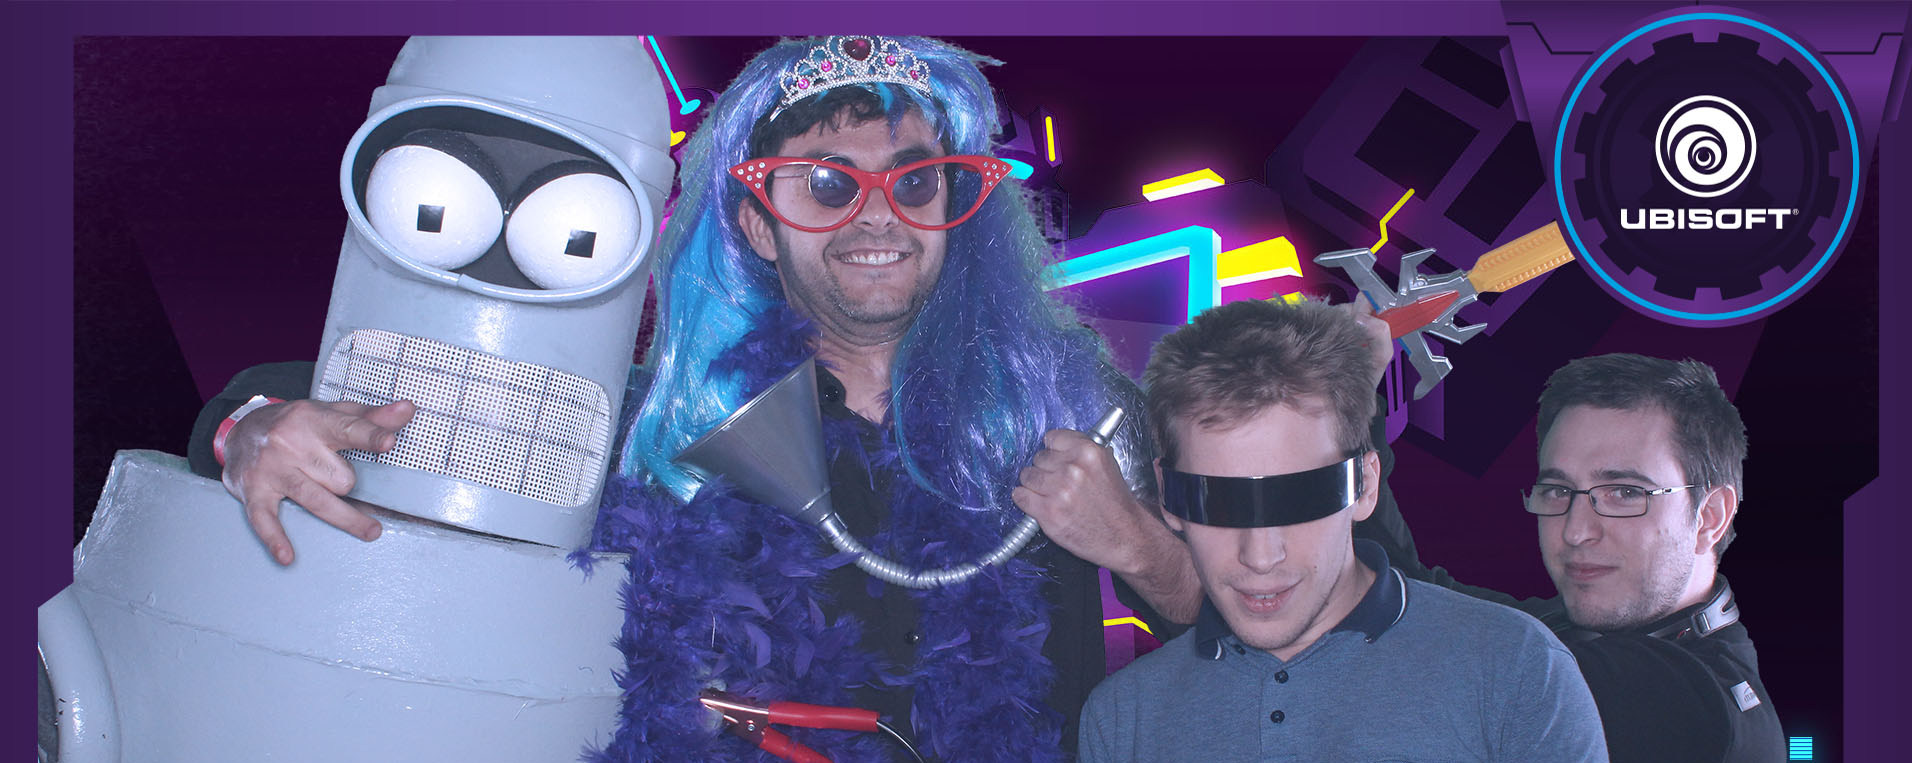 Photo booth - people - fun 03